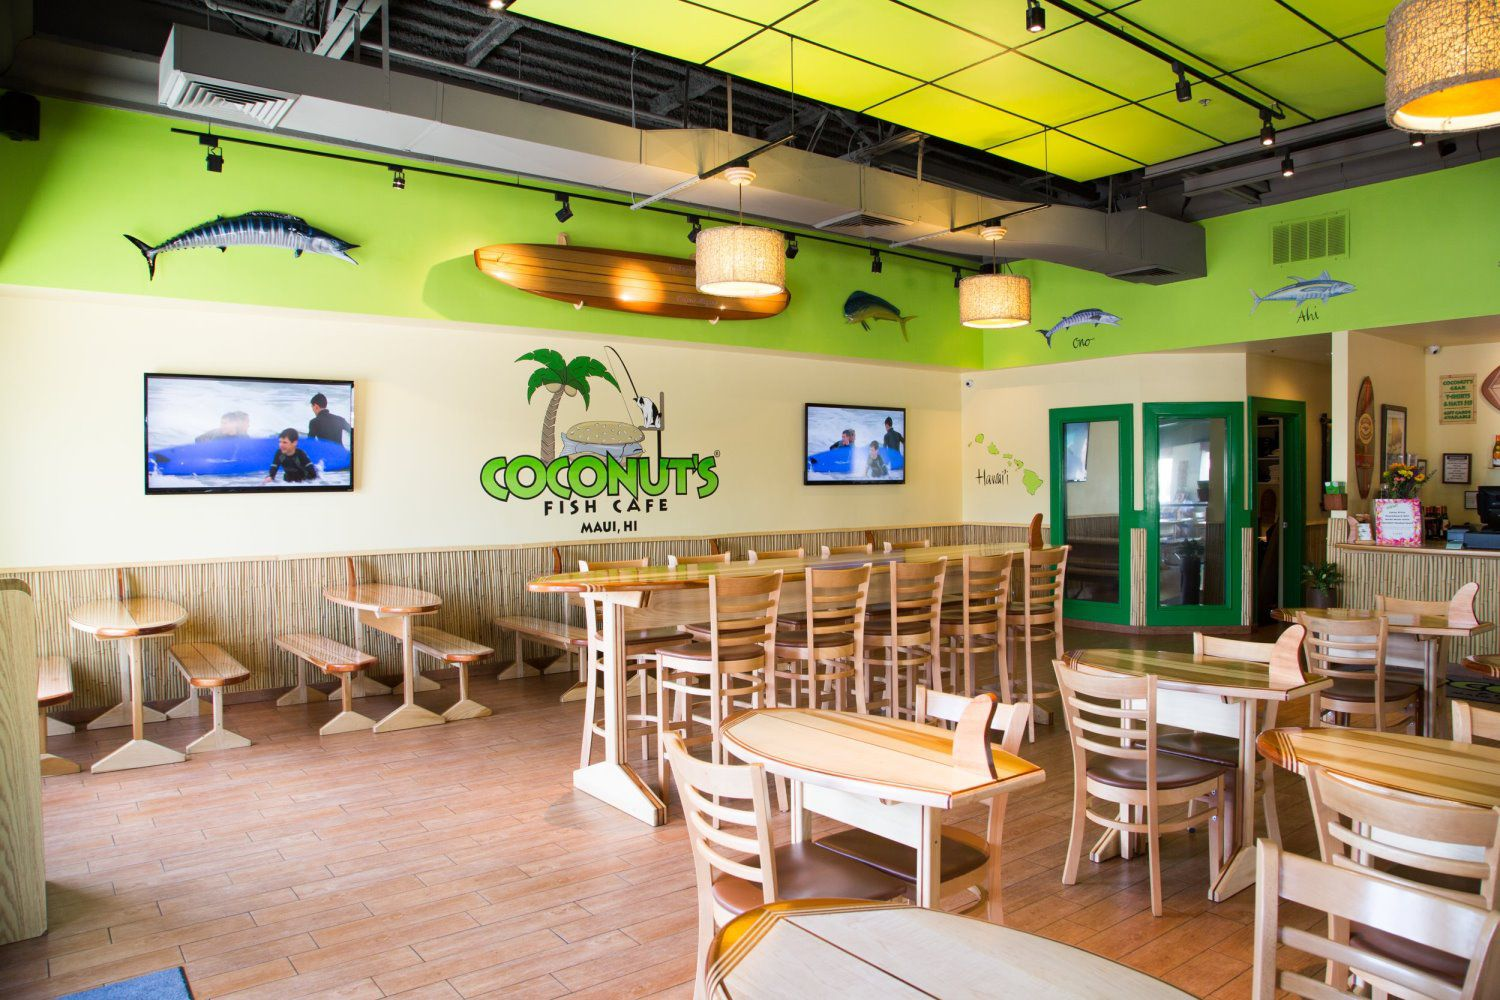 About coconut 39 s fish cafe llc for Coconut s fish cafe